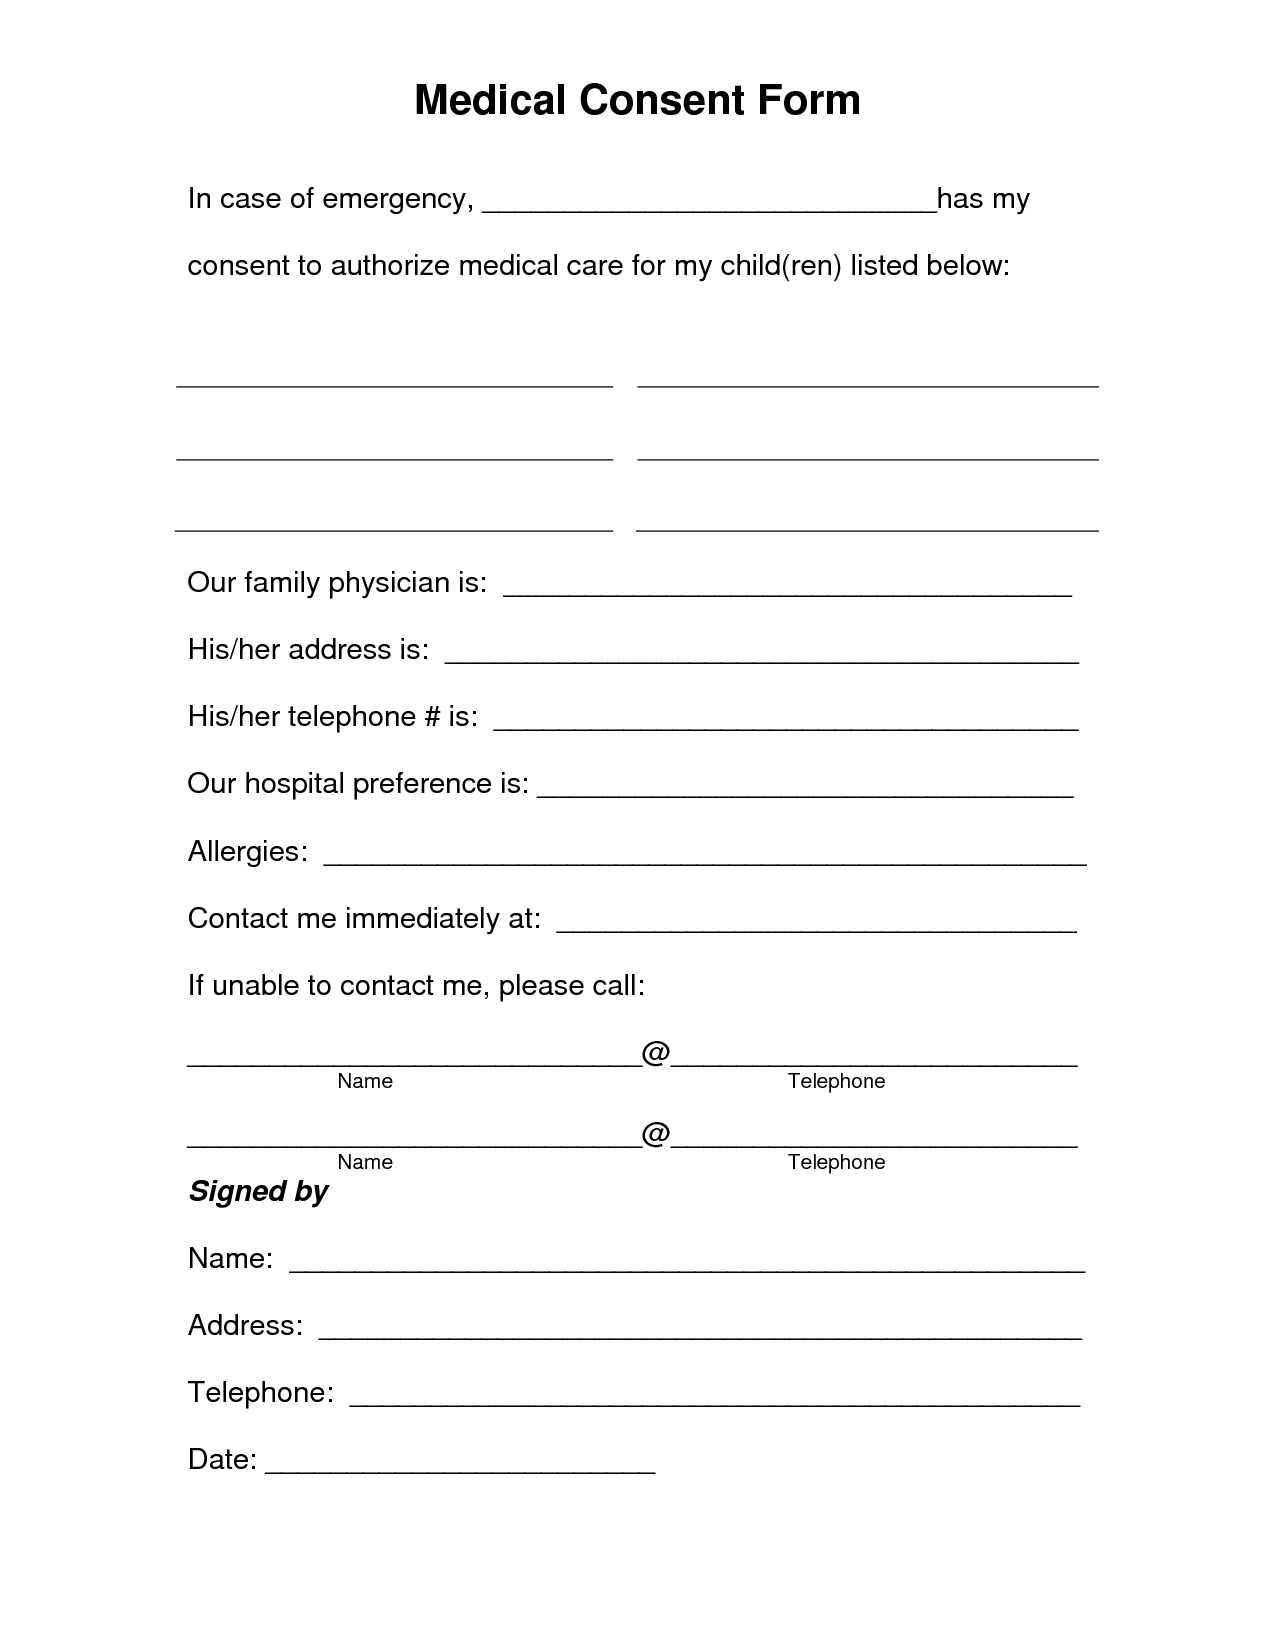 Merveilleux Free Printable Medical Consent Form | Free Medical Consent Form